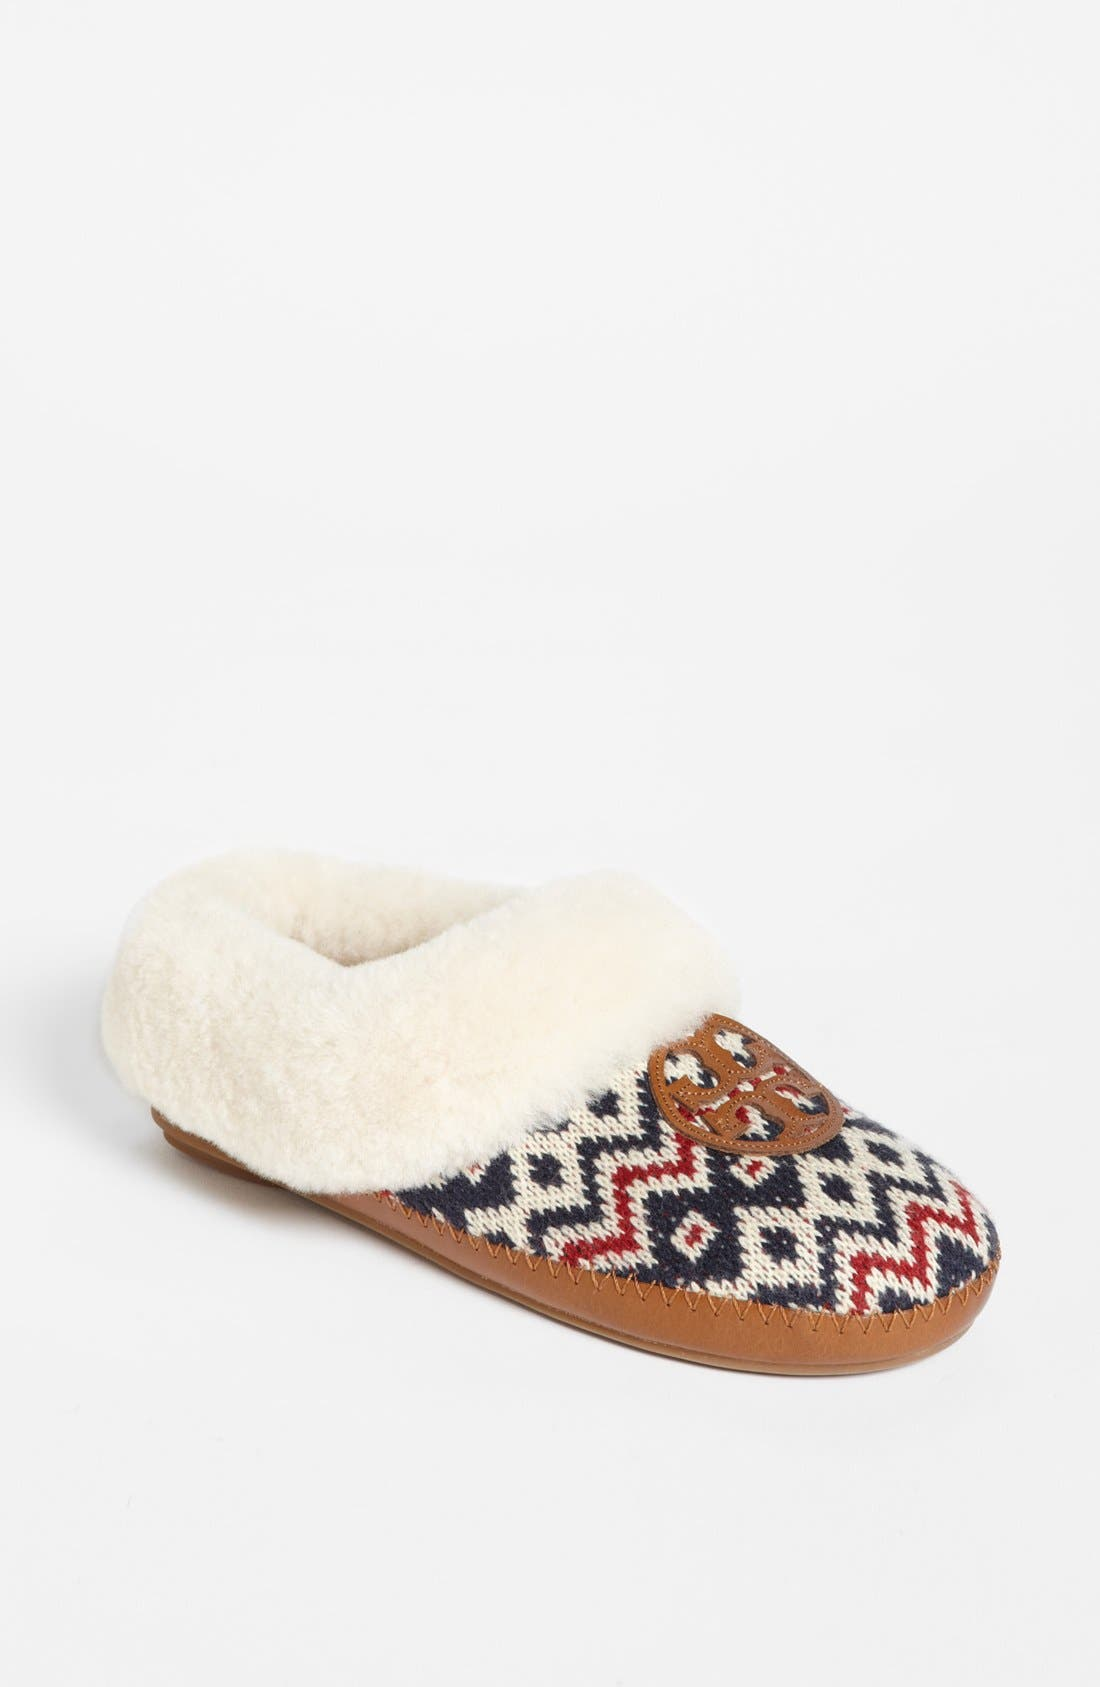 Main Image - Tory Burch 'Coley' Slipper